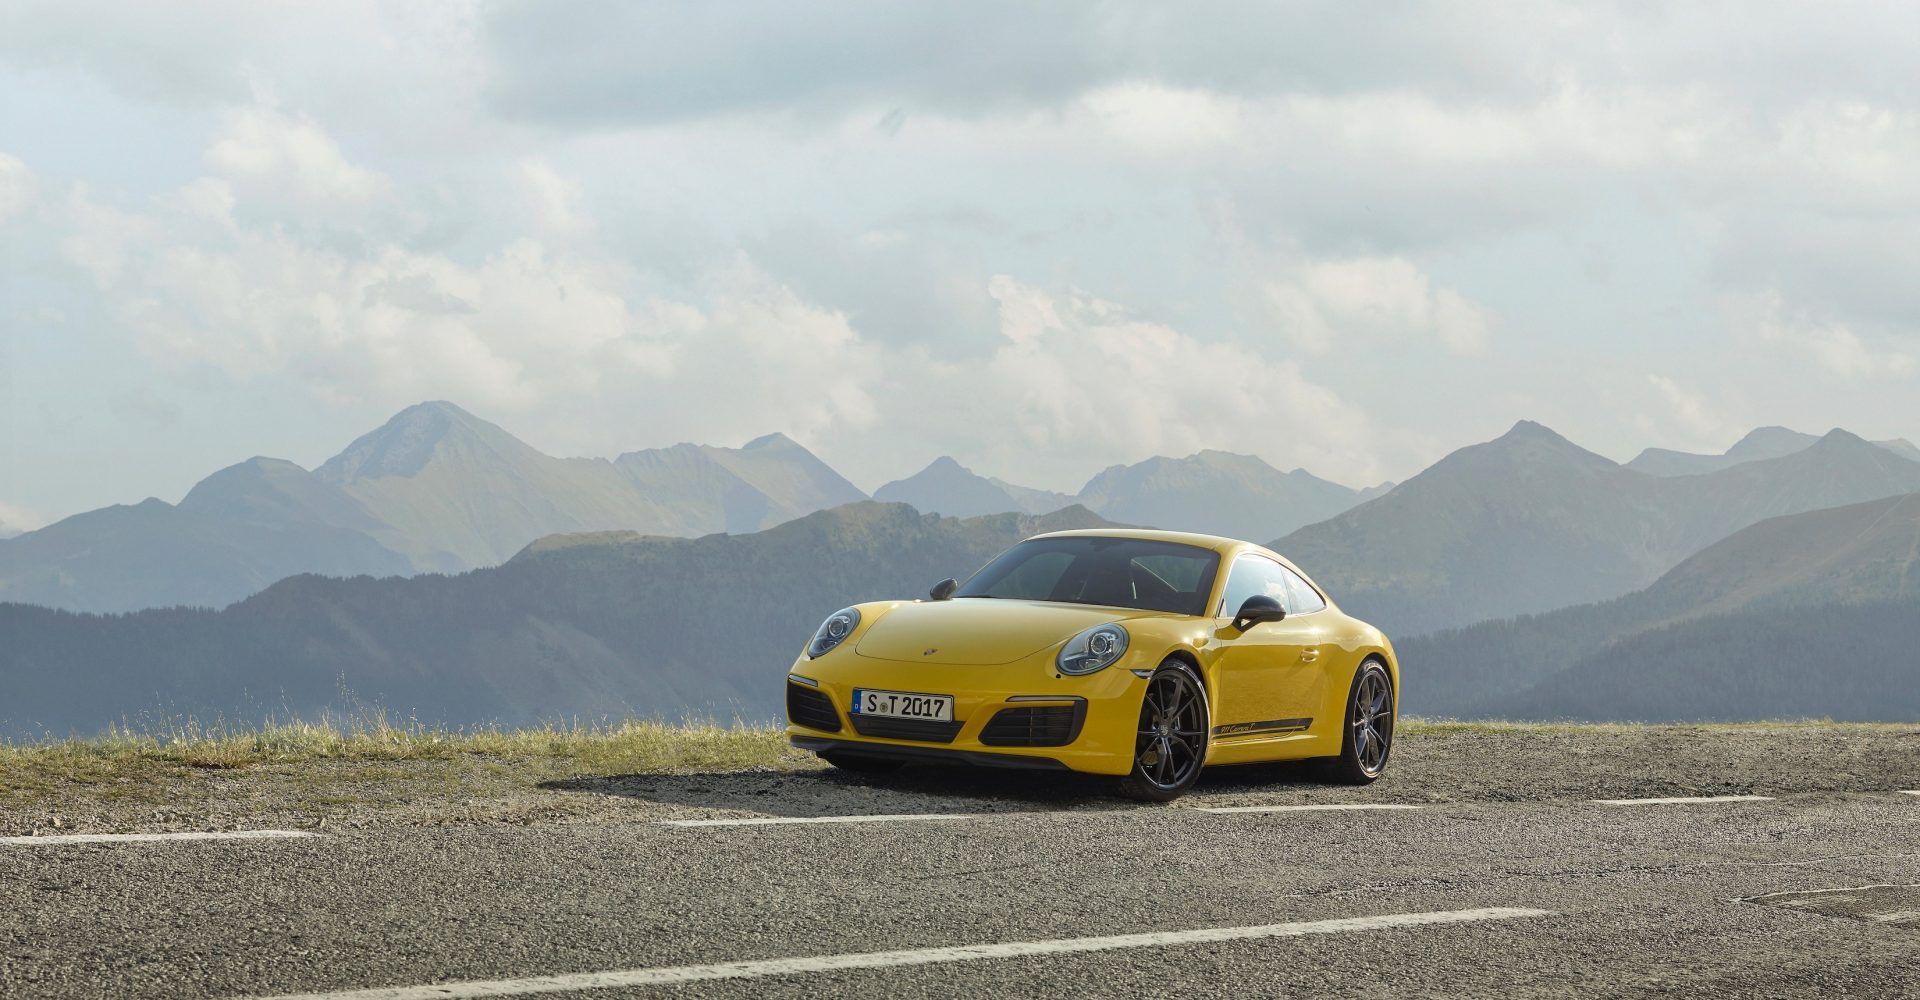 6 cool things about the new Porsche 911 Carrera T